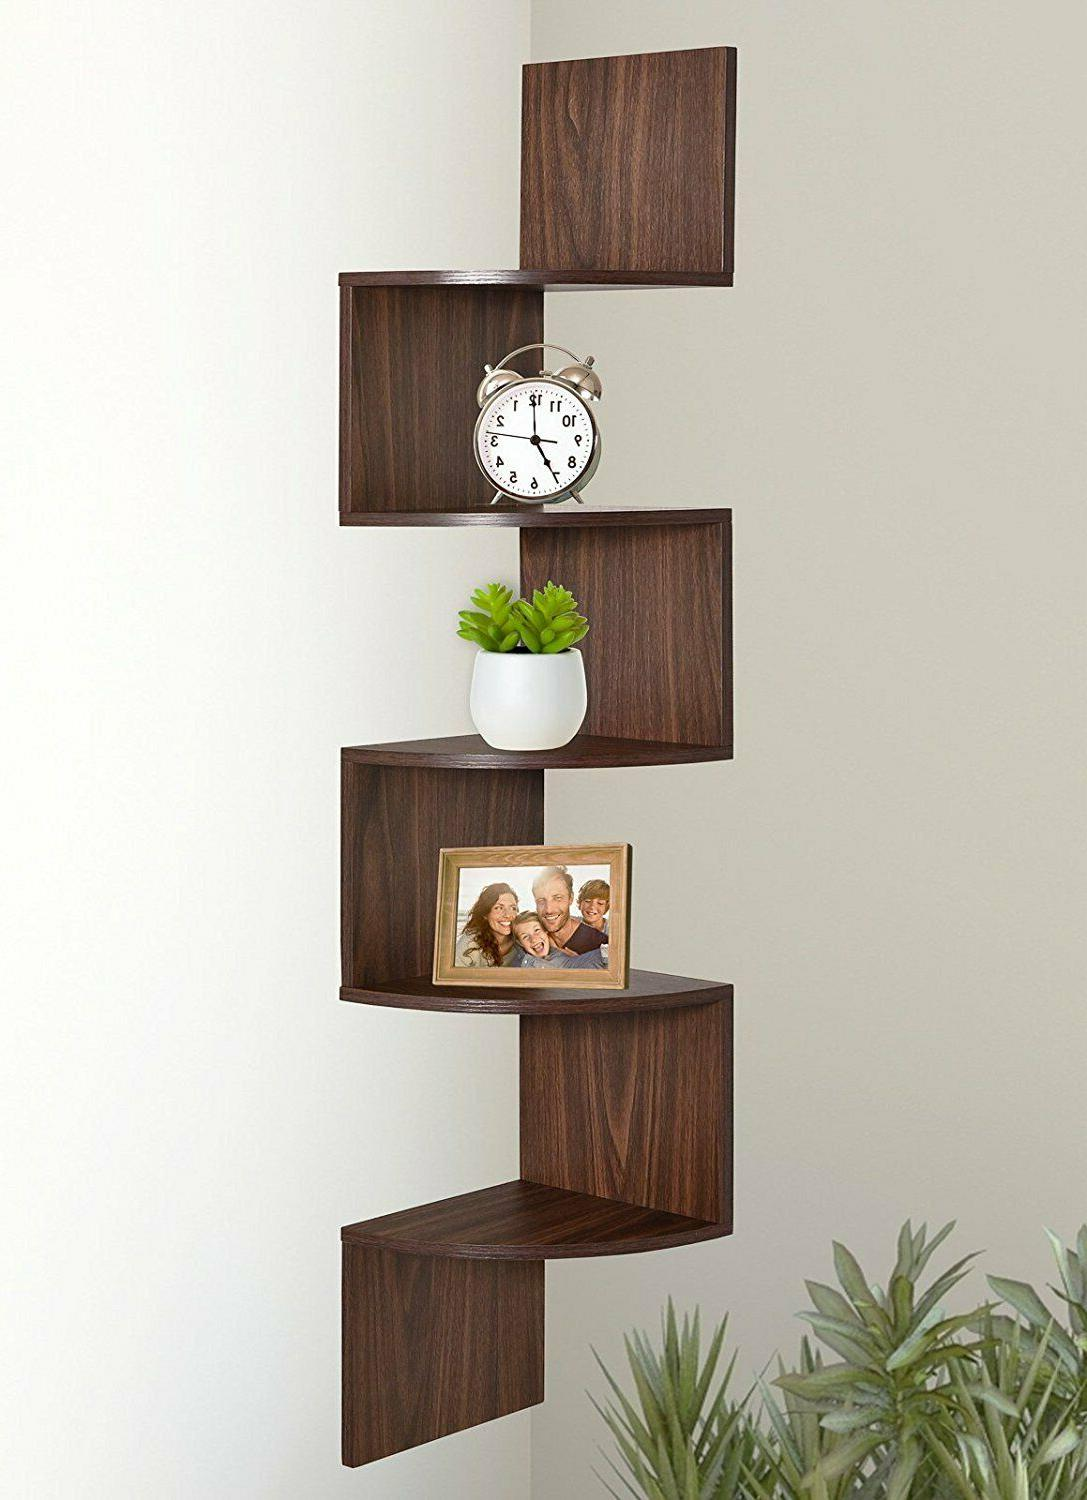 Greenco Mount Shelves Finish Home New color